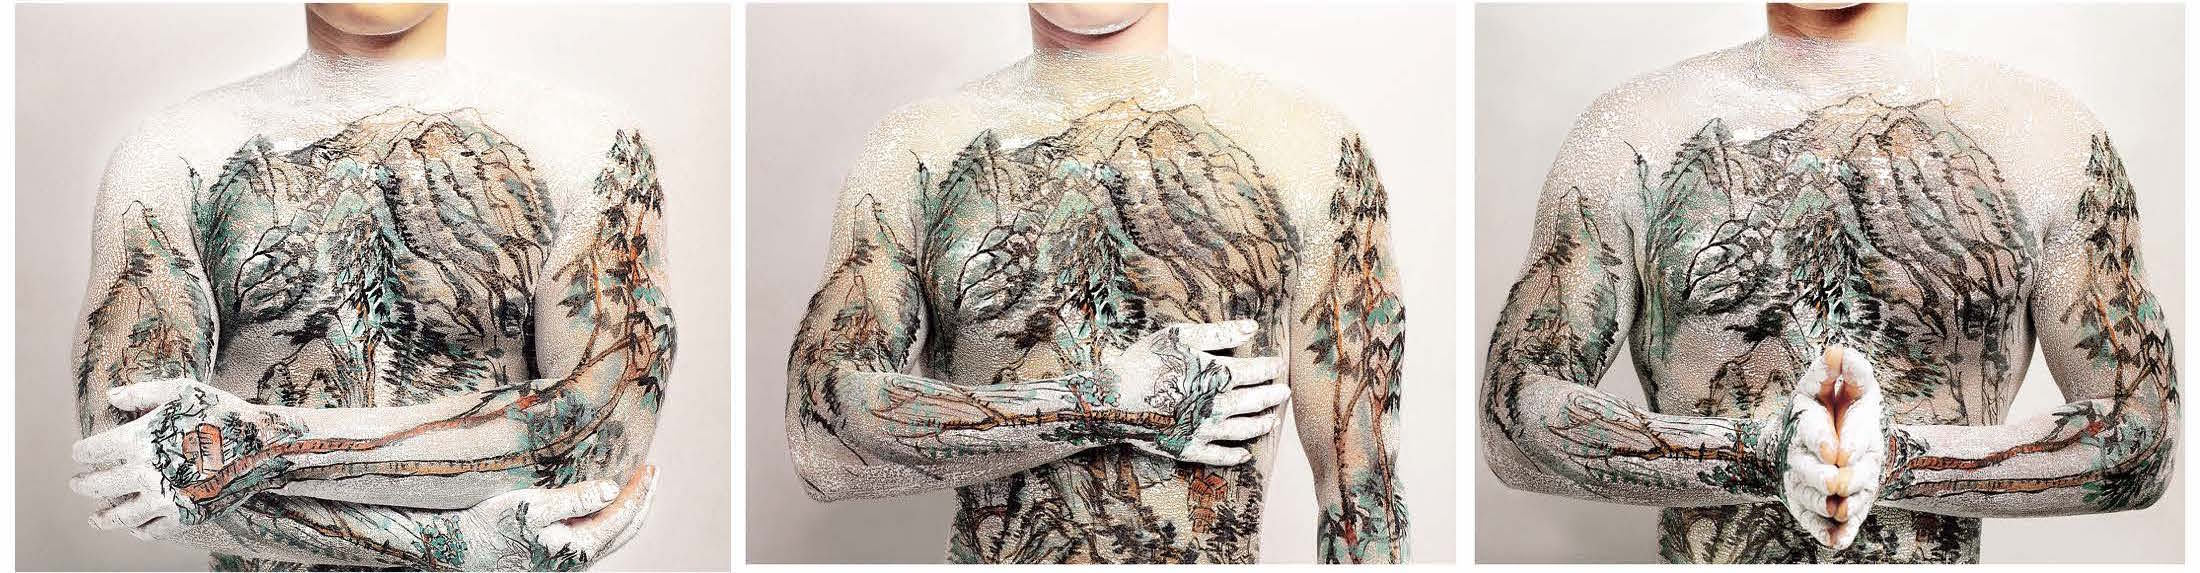 Huan Yan, Chinese Landscape Tattoo , 1999 / Courtesy the artist and the Walther Collection